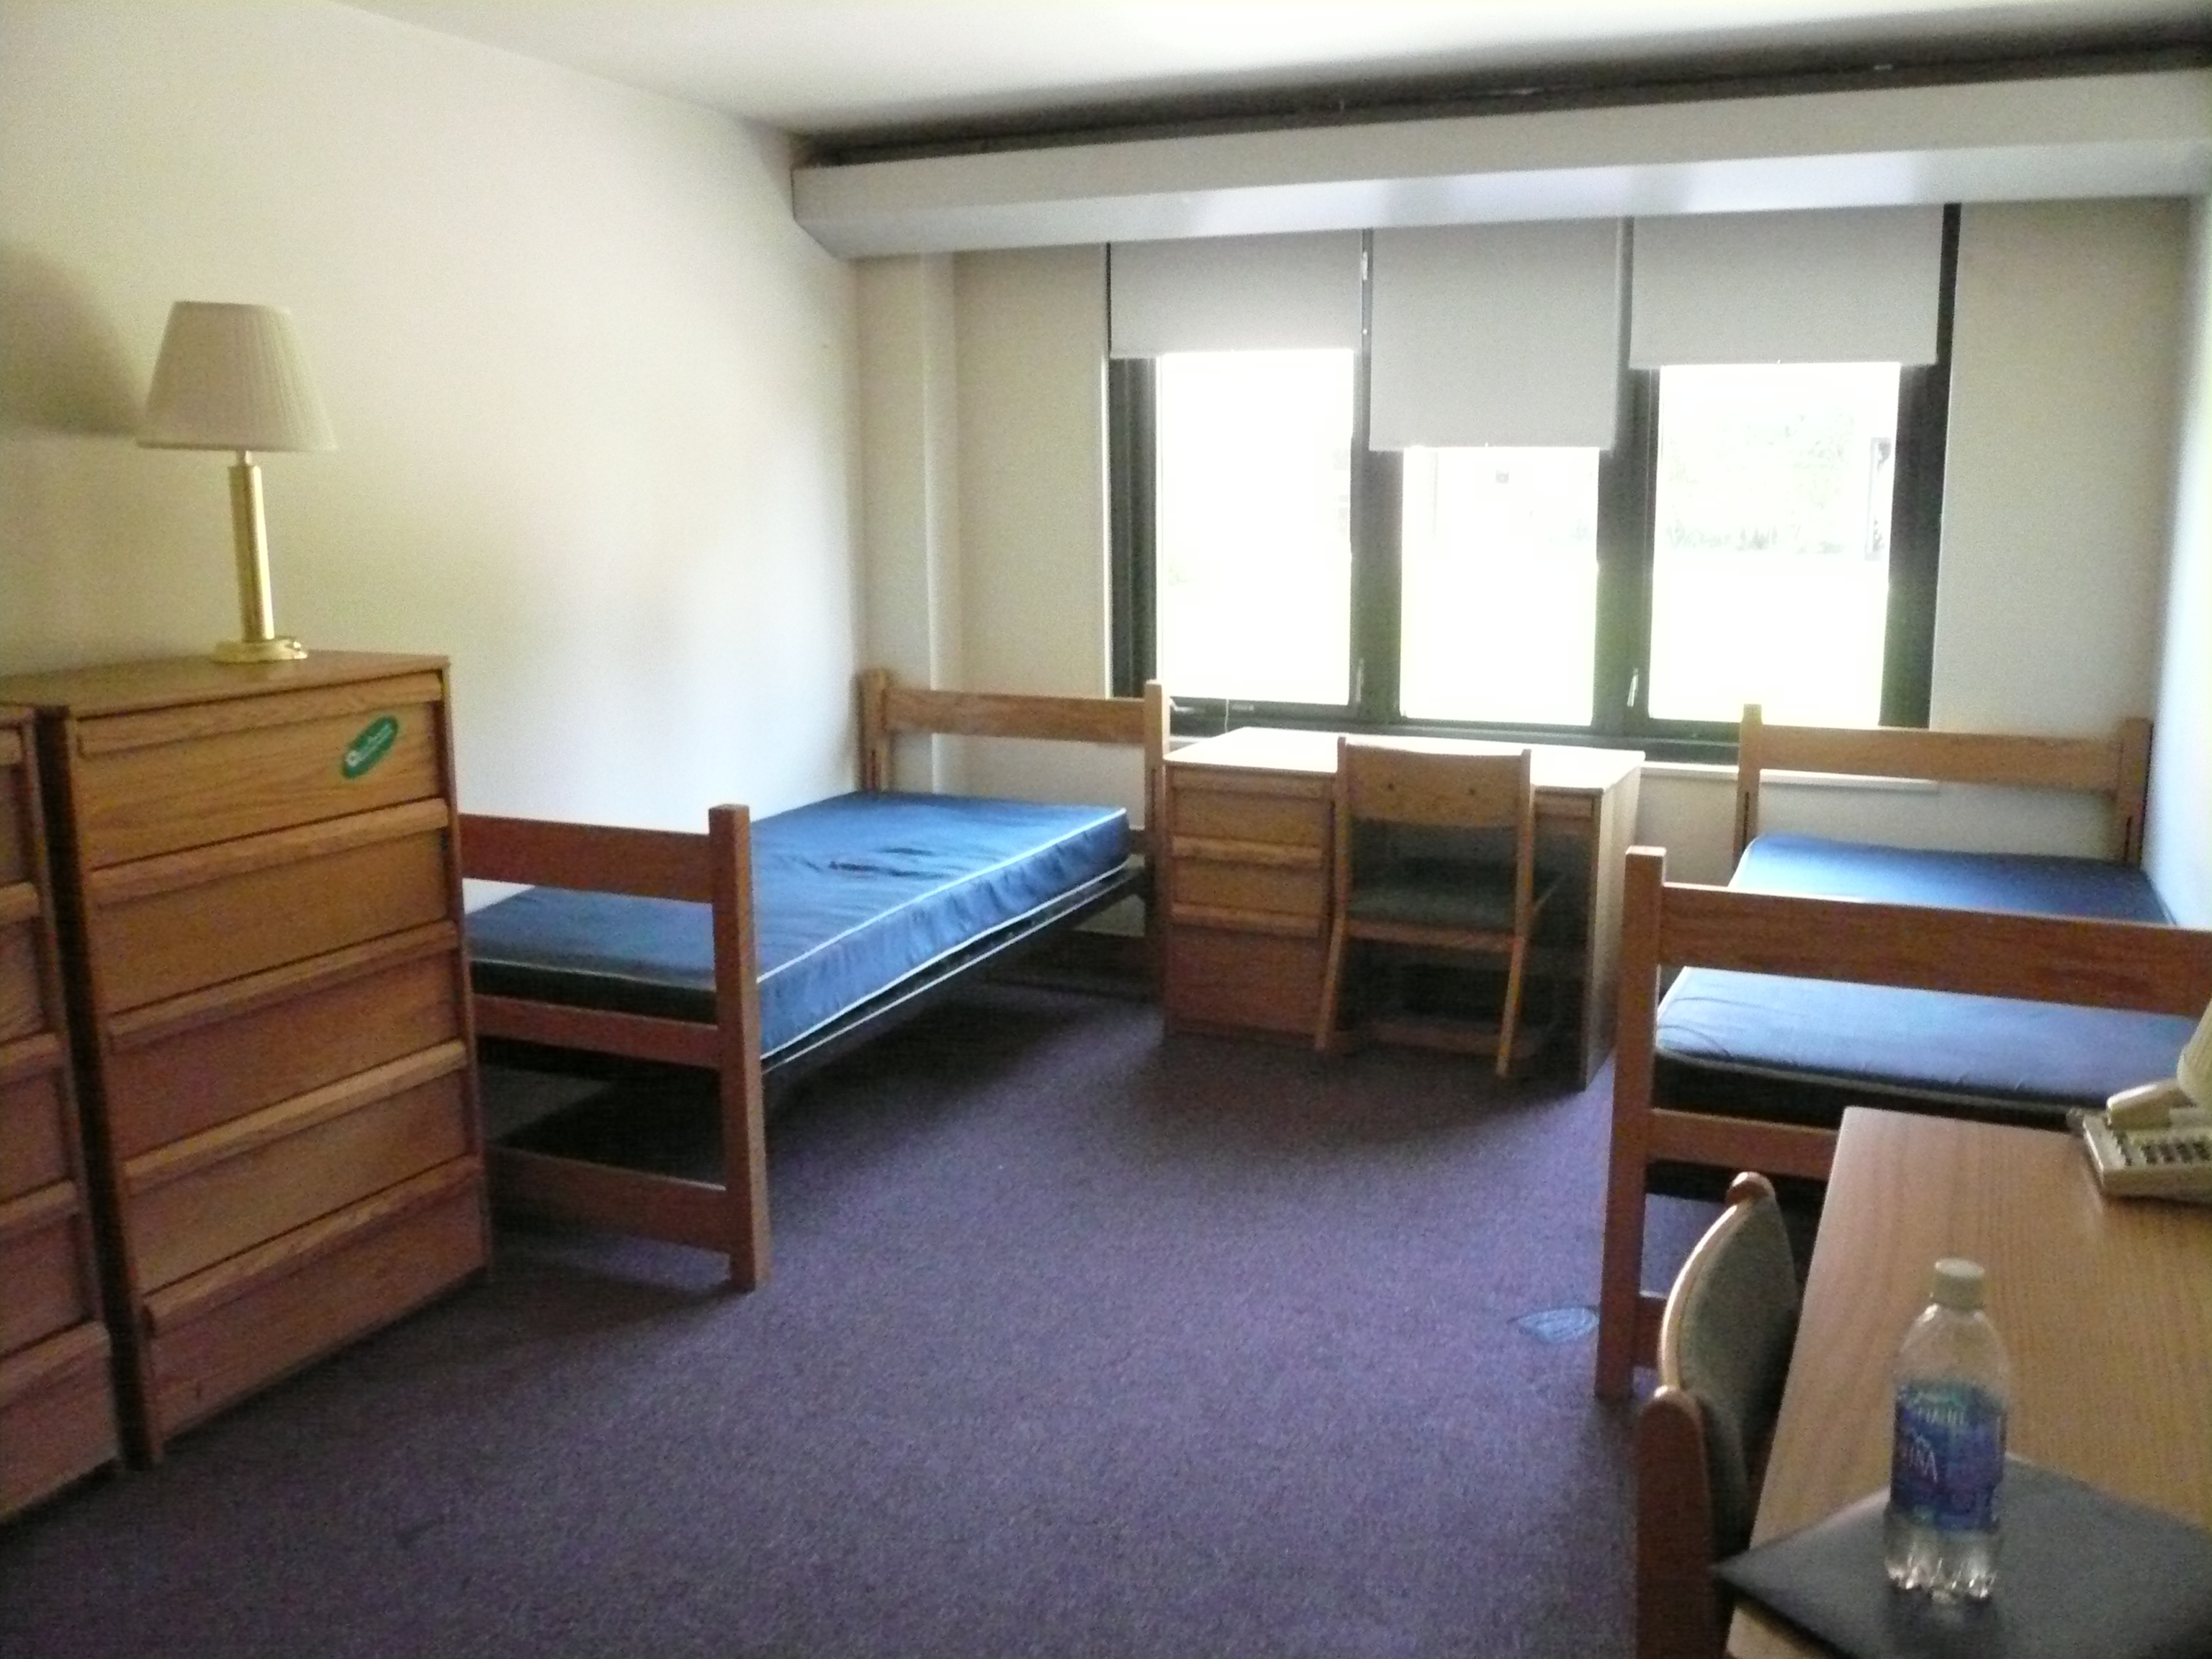 Pros and Cons of living in the dorms as a student